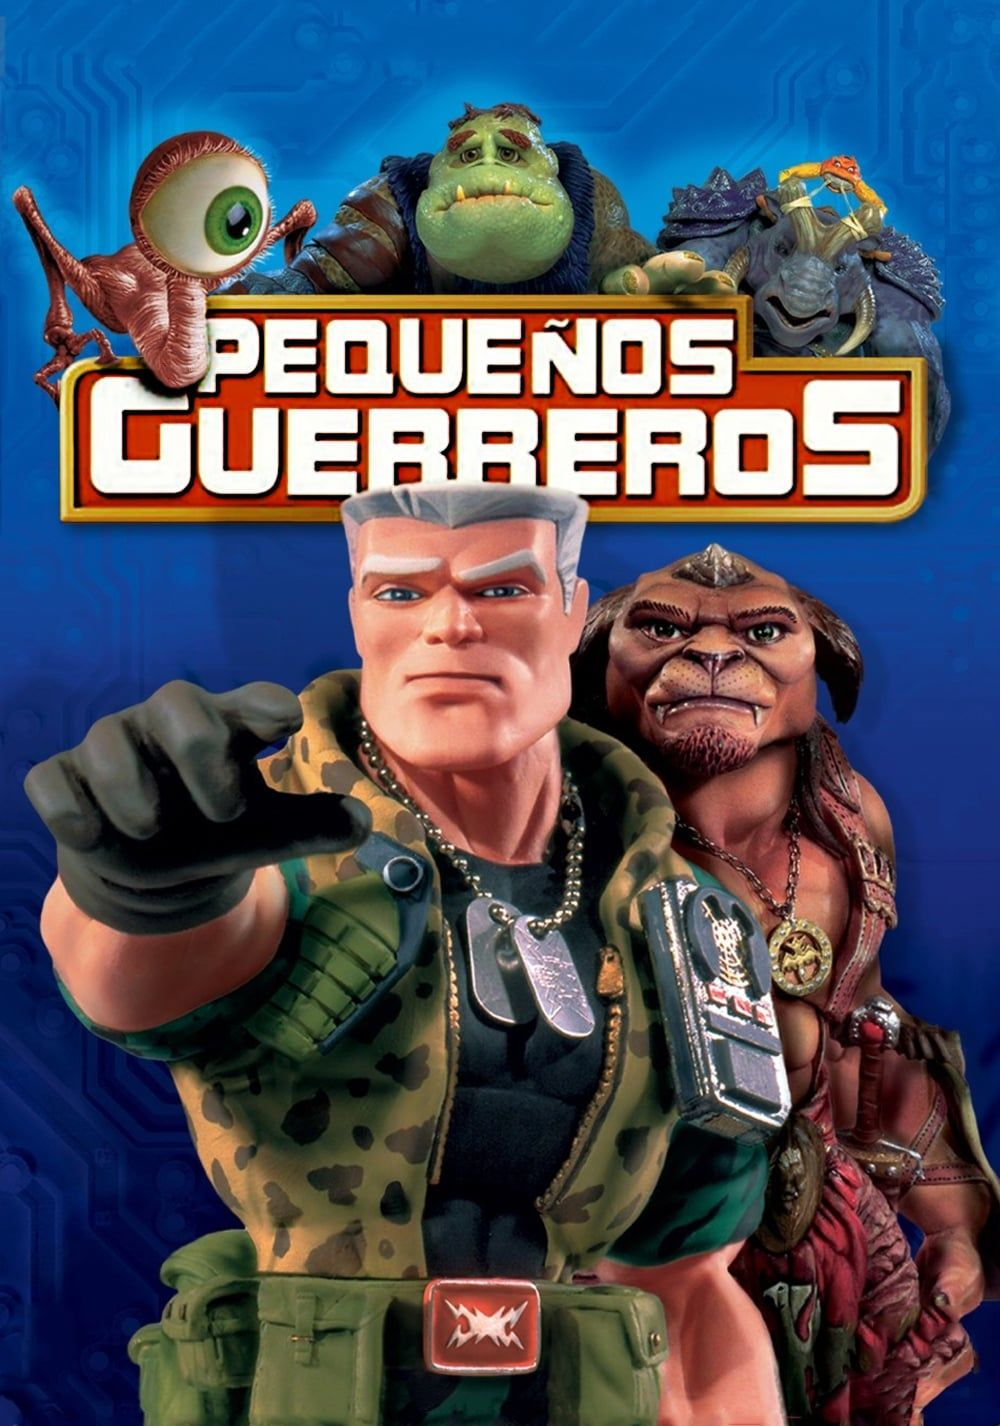 Small Soldiers Teljes Film Magyarul Indavideo Smallsoldiers Hungary Magyarul Teljes Magyar F Small Soldiers Películas Completas Peliculas Completas Hd